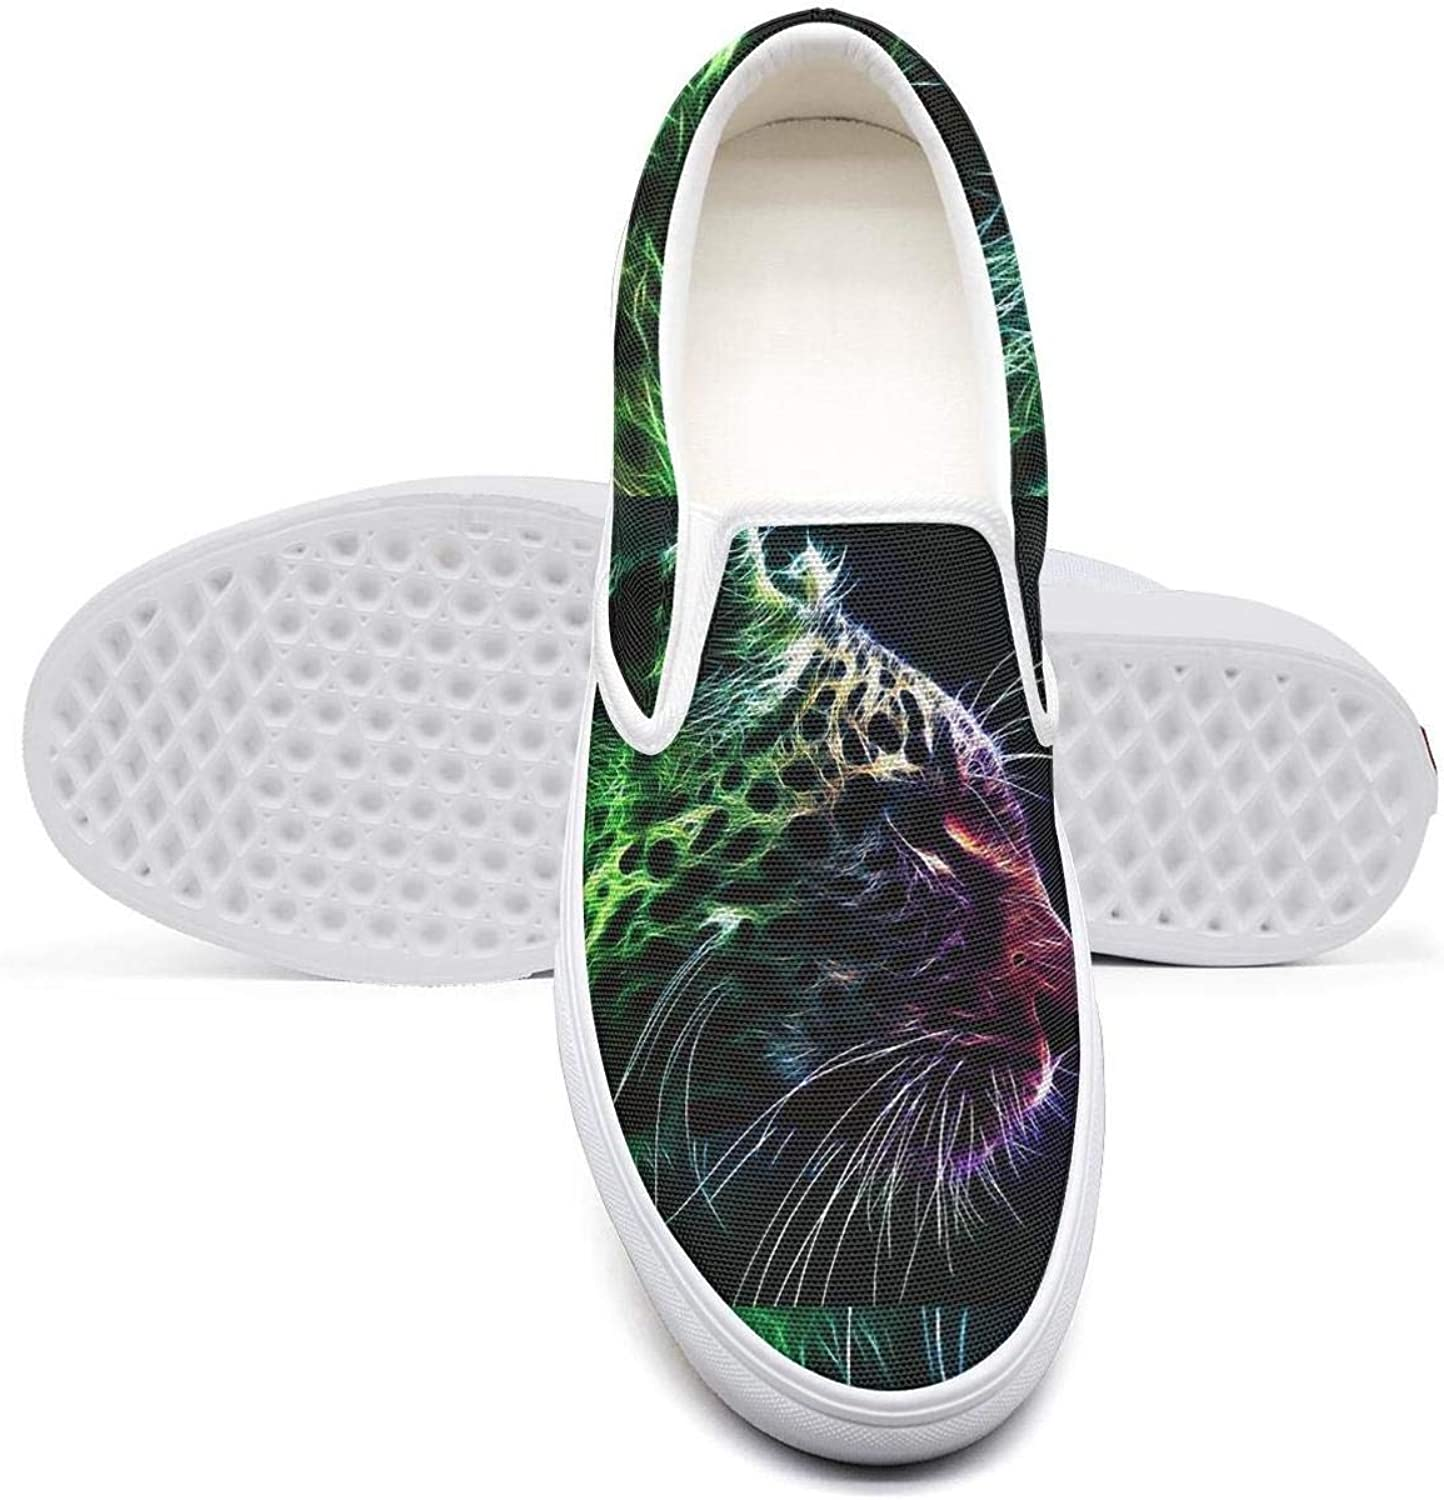 Skateboard Womens Sneakers Shoes Pink Animal Print Leopard Texture Slip ons for Women Cool Lightweight Canvas Sneakers